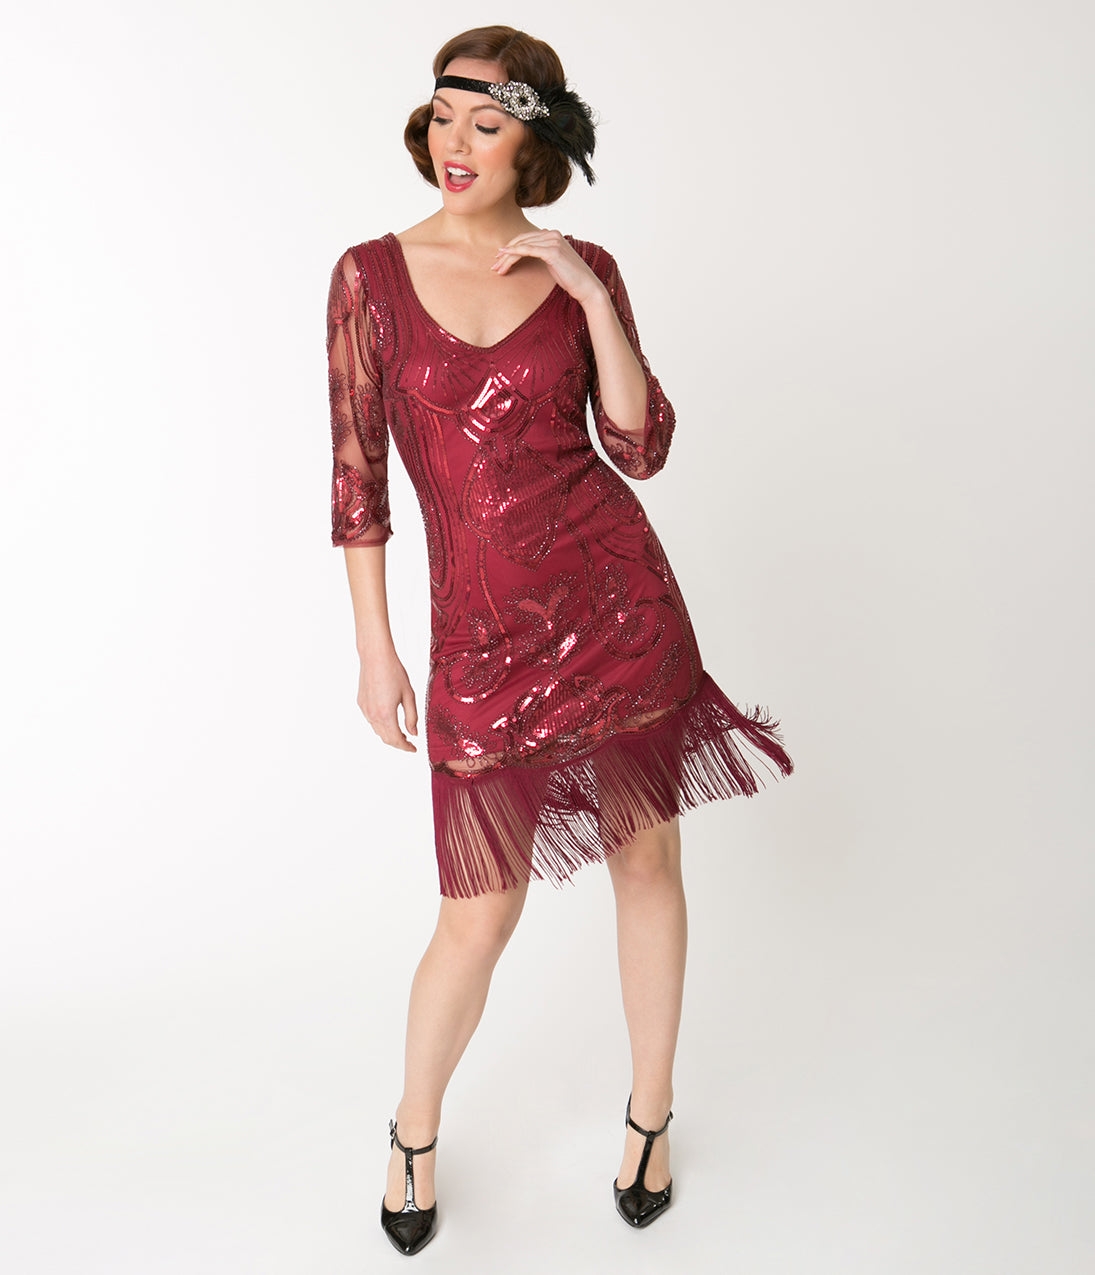 1920s Evening Dresses & Formal Gowns Unique Vintage Burgundy Red Sequin Margaux Sleeved Fringe Flapper Dress $43.00 AT vintagedancer.com